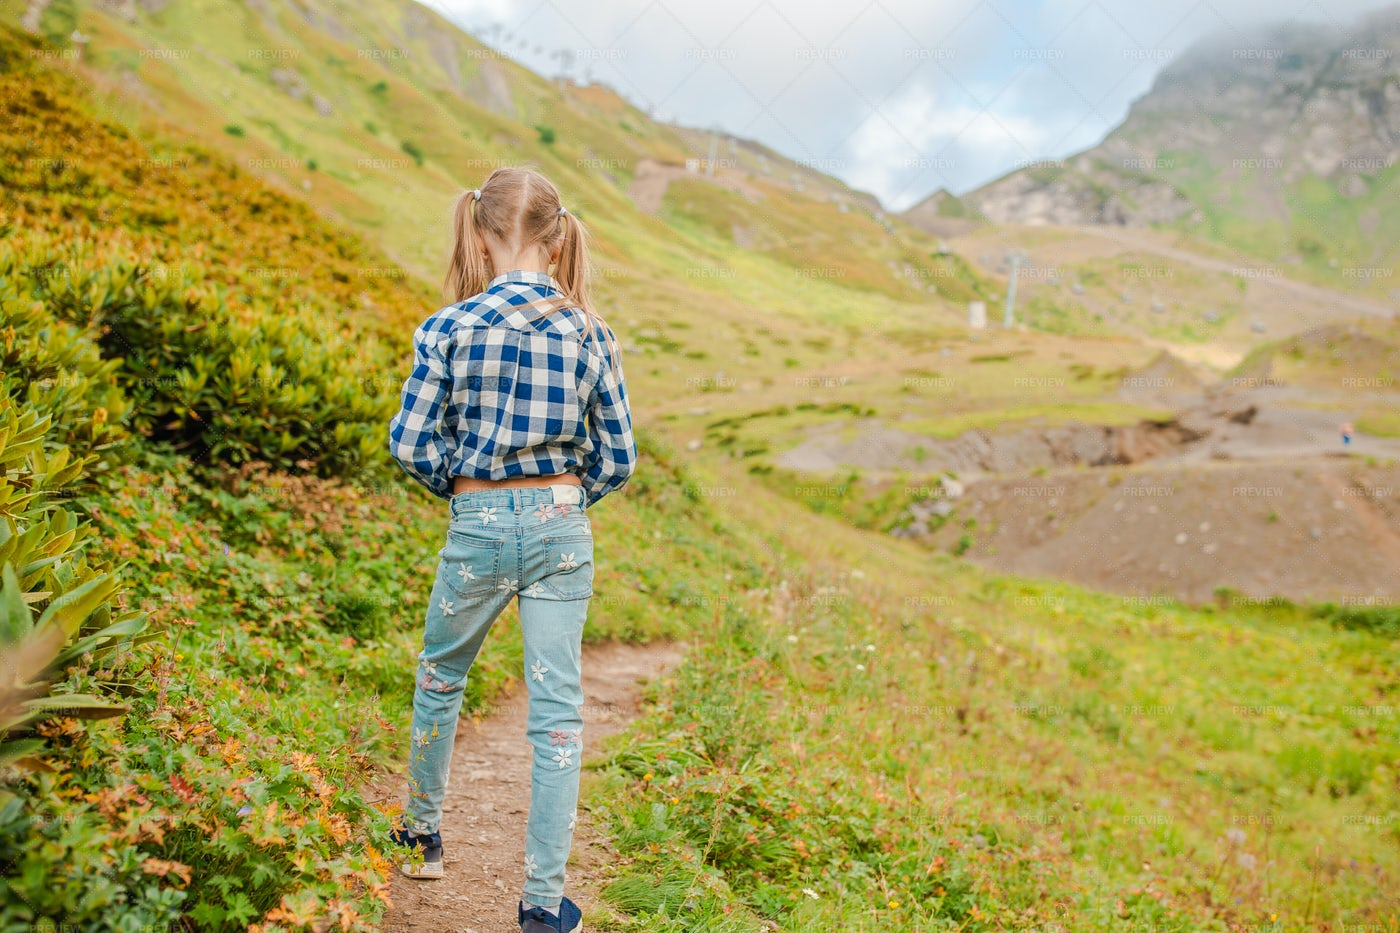 Little Girl Walking In The Mountains: Stock Photos